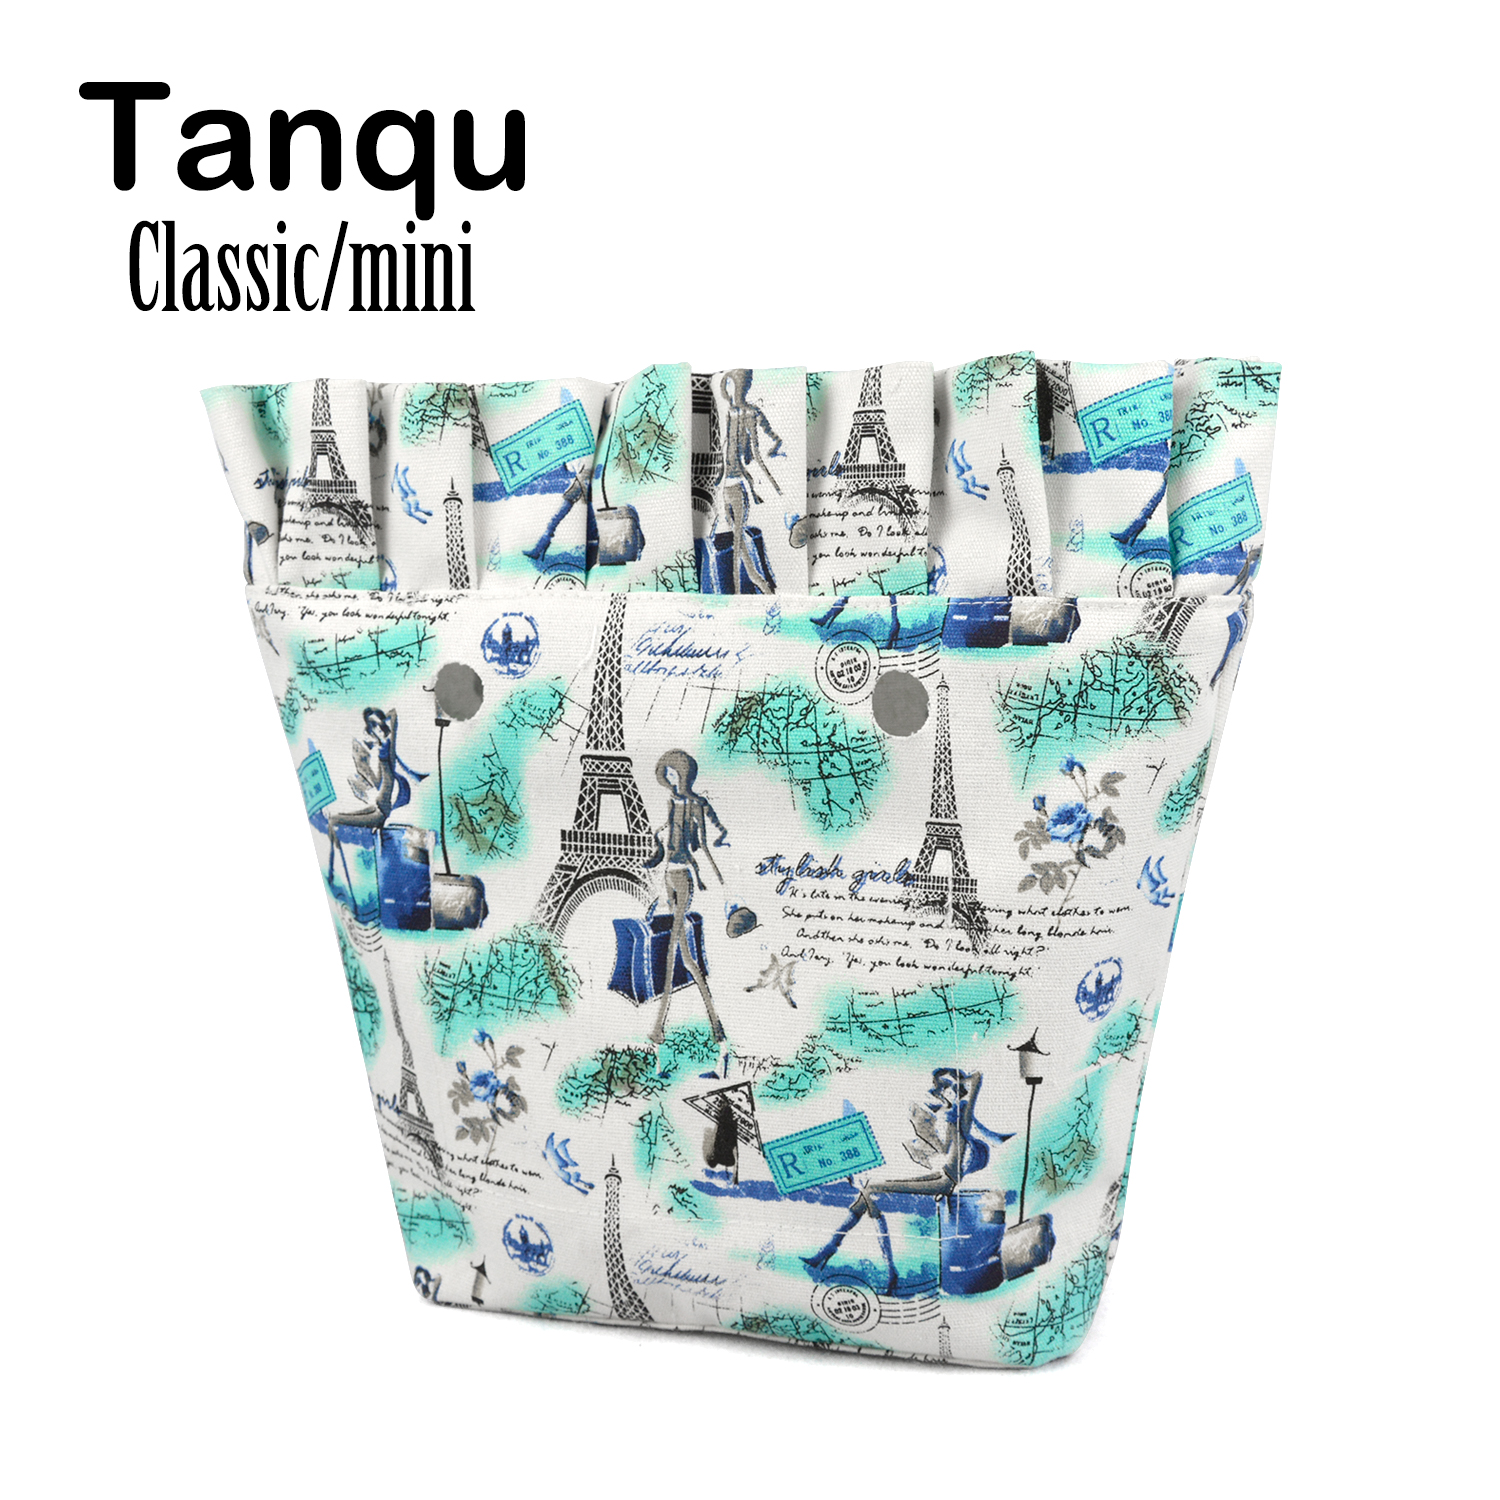 TANQU New Frill Pleat Ruffle Classic Mini Colorful Zip-up Inner Lining Insert for Big Mini Obag Canvas Inner Pocket for O Bag чехол mophie juice pack air